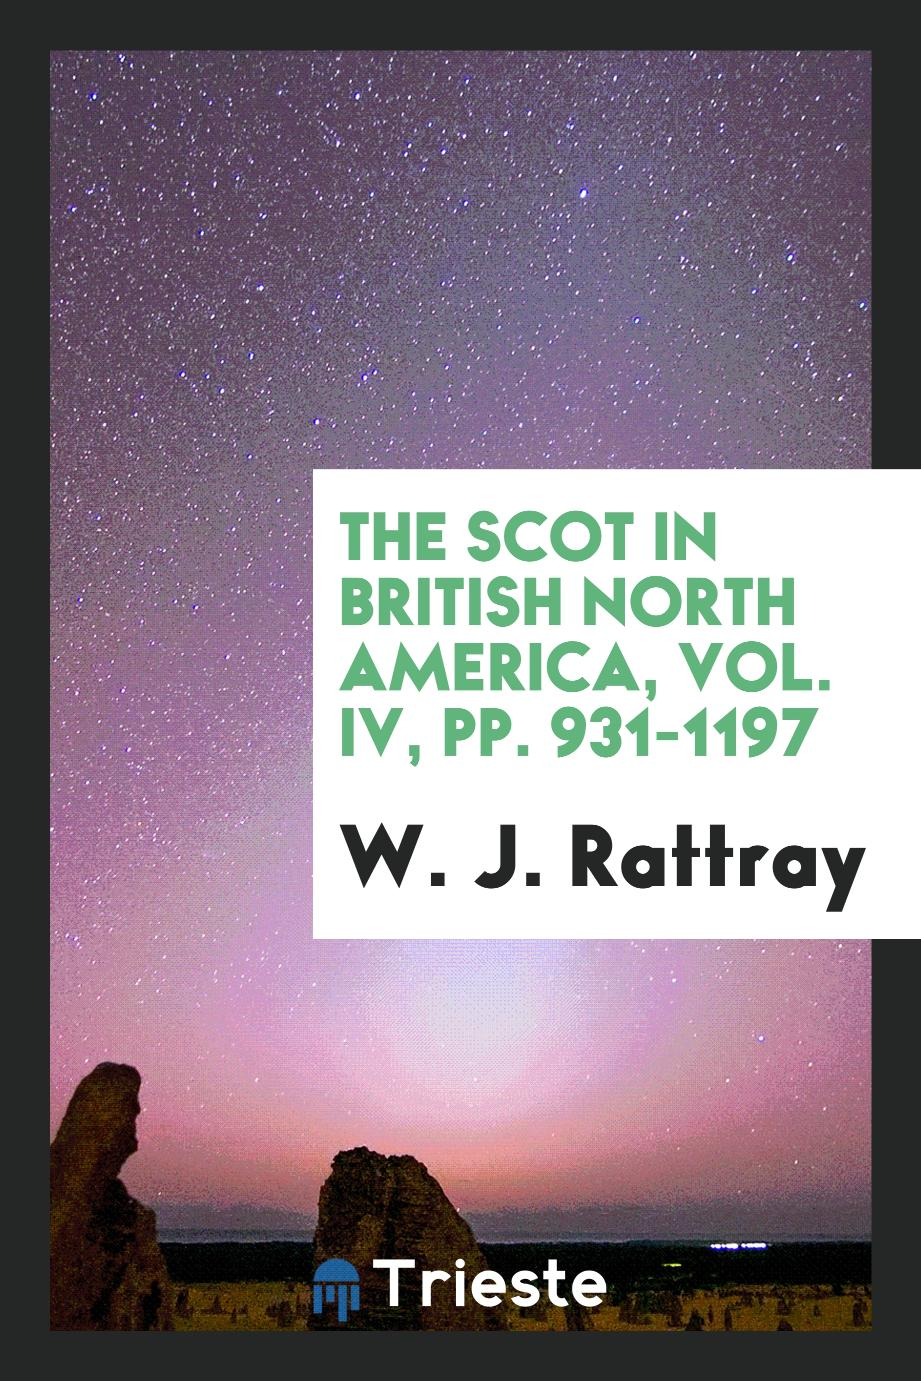 The Scot in British North America, Vol. IV, pp. 931-1197